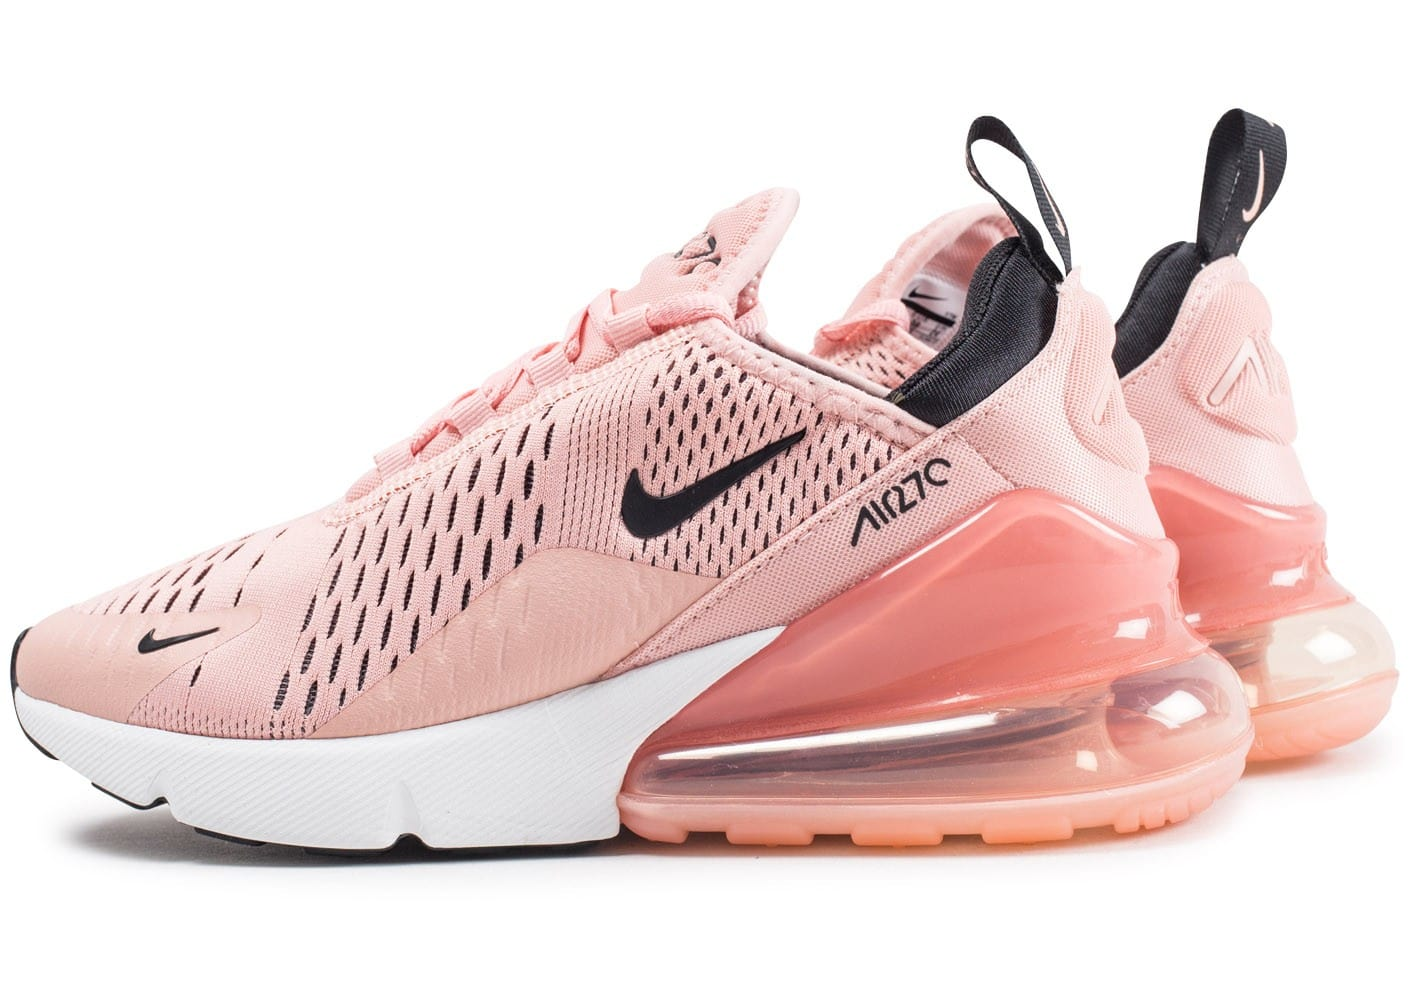 air max 270 pas cher rose,nike air max 270 enfant rose